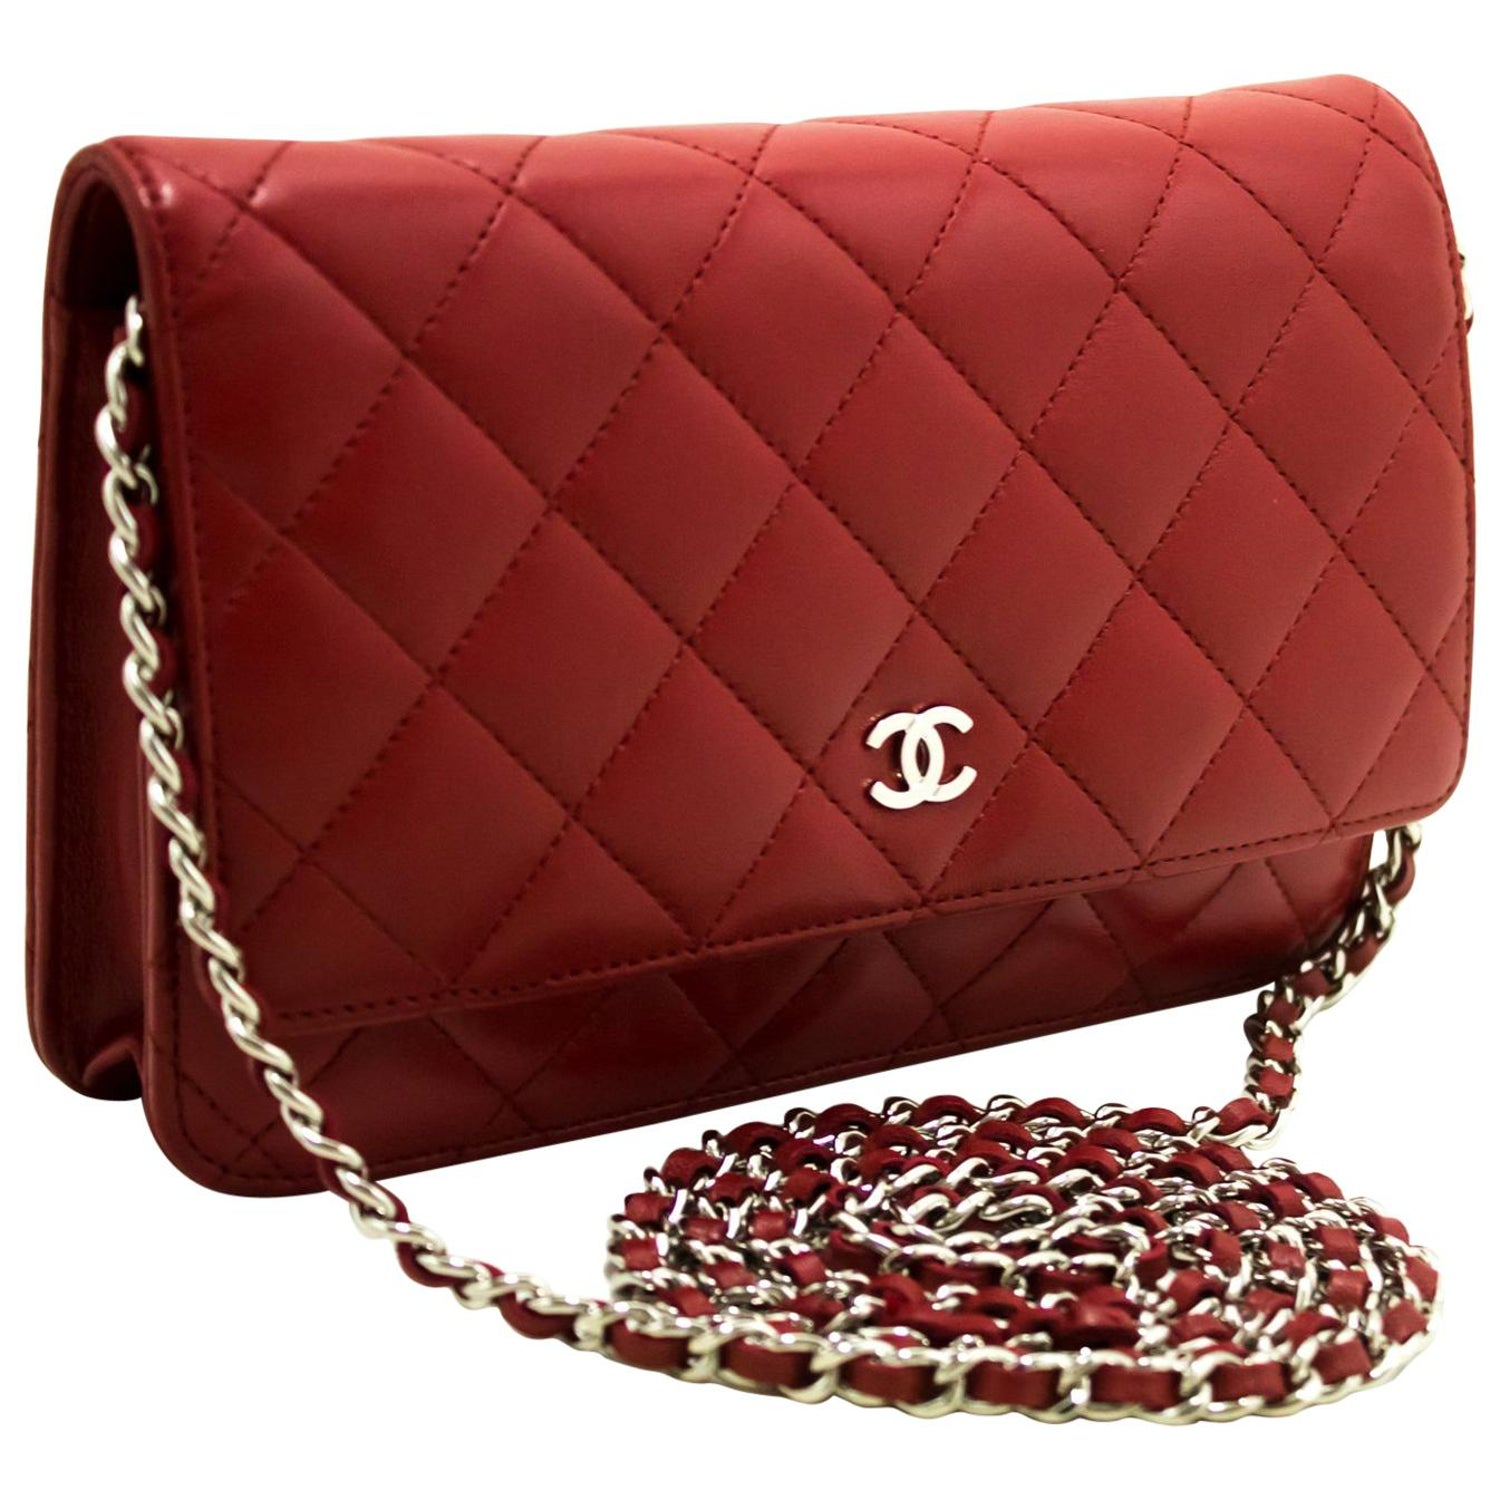 ebf915acb06b Chanel Red Wallet On Chain Crossbody Clutch Lamb Shoulder Bag For Sale at  1stdibs